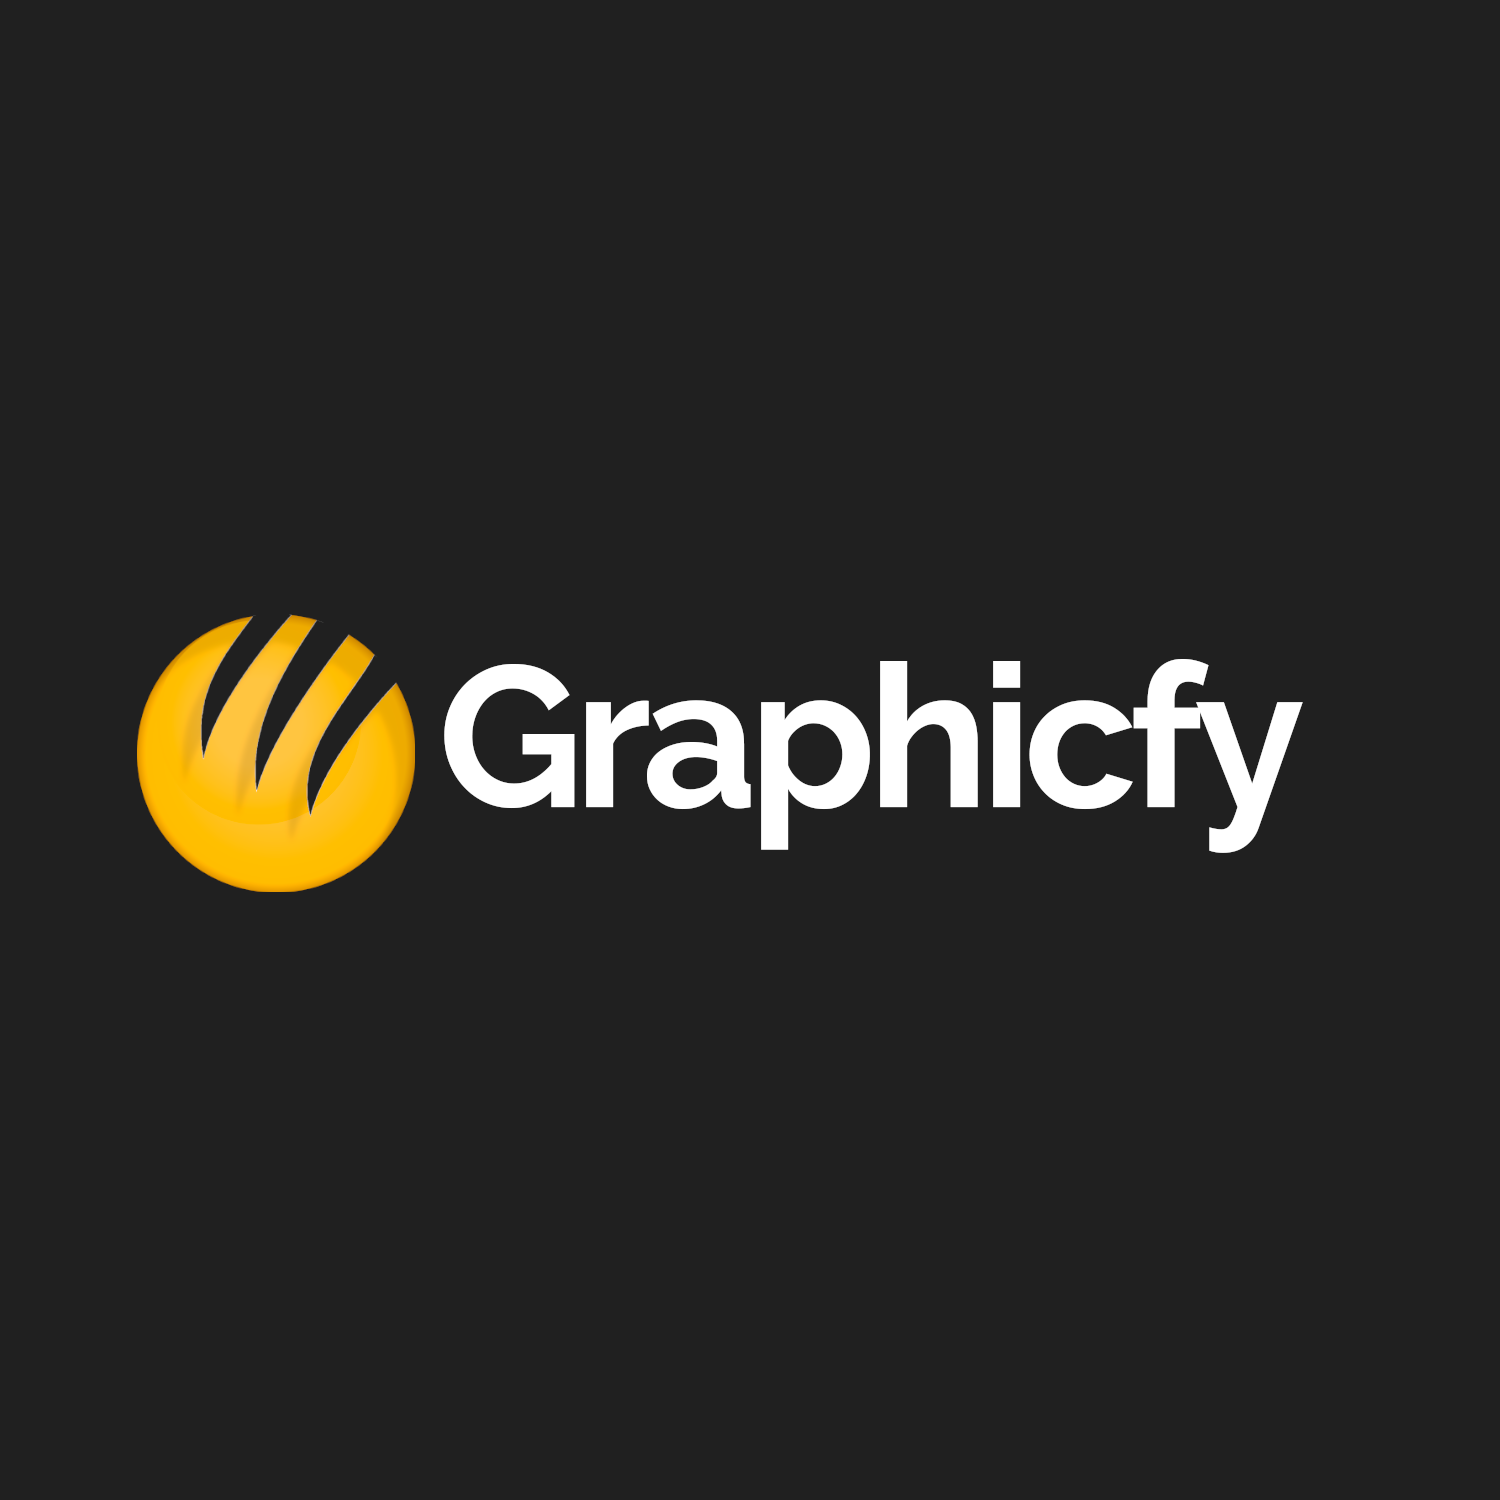 Graphicfy